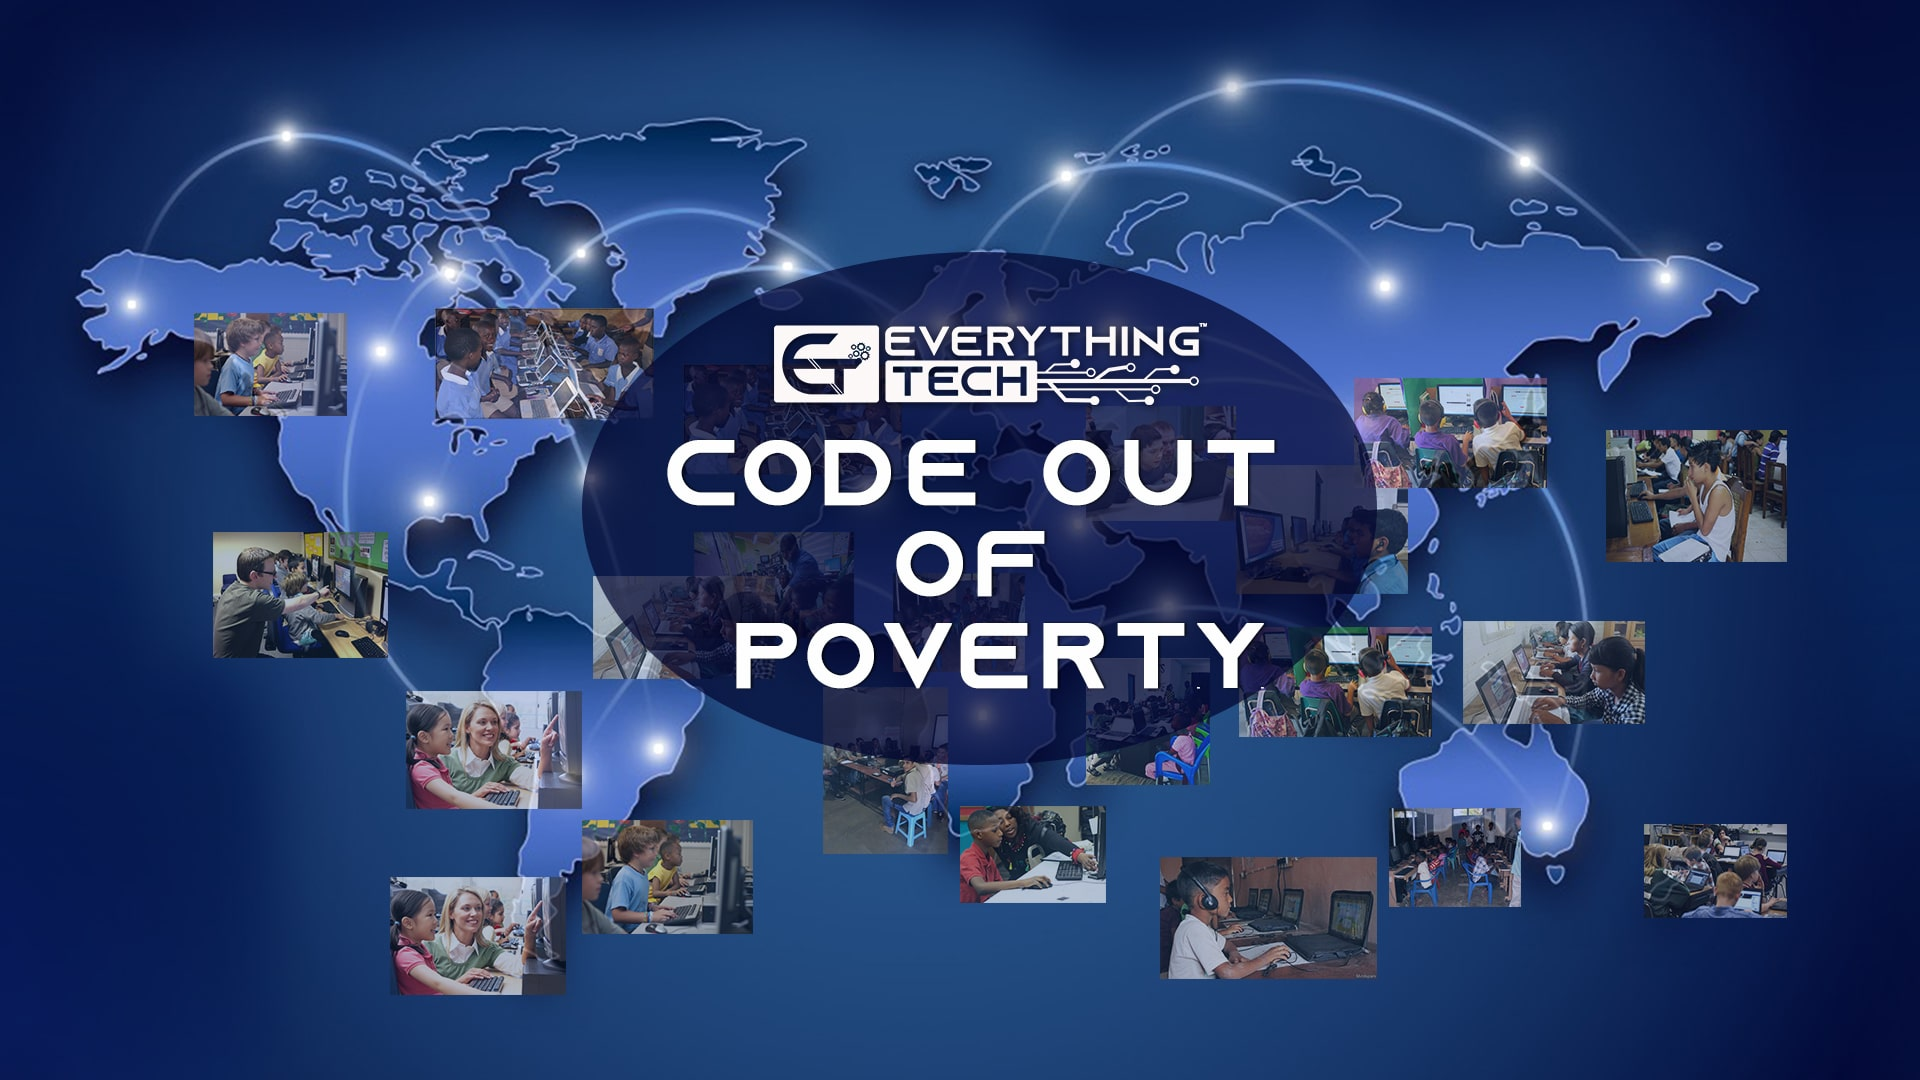 EverythingTech Starts its Global 'Code out of Poverty' Program to Help Underprivileged Kids and Women in Need